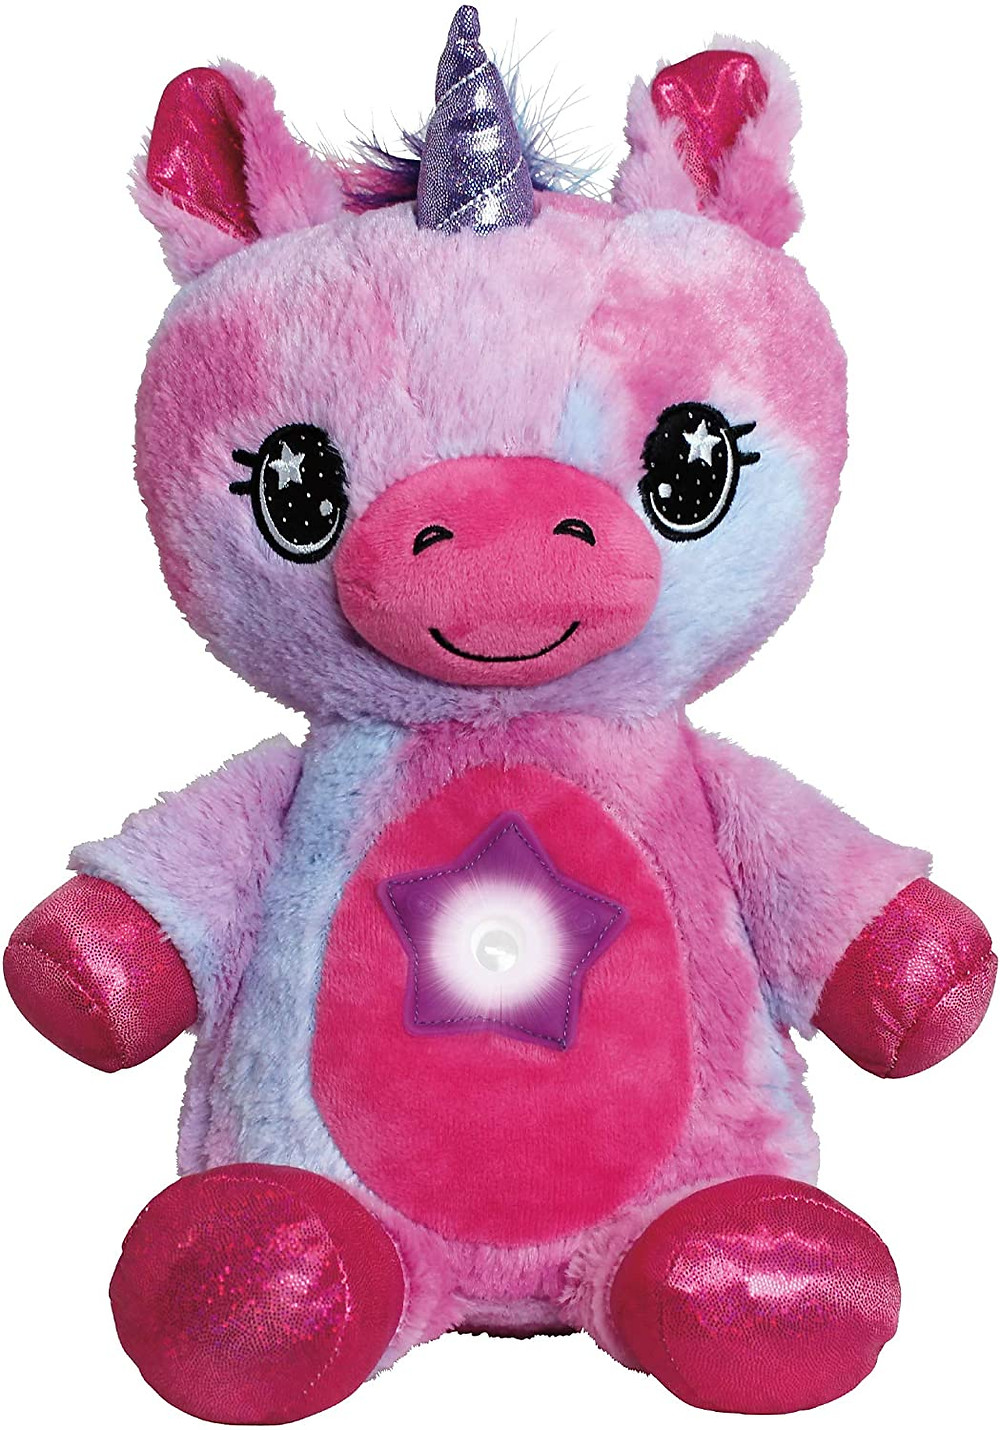 Plush toy doll unicorn for kids with night light lamp glowing stars and objects